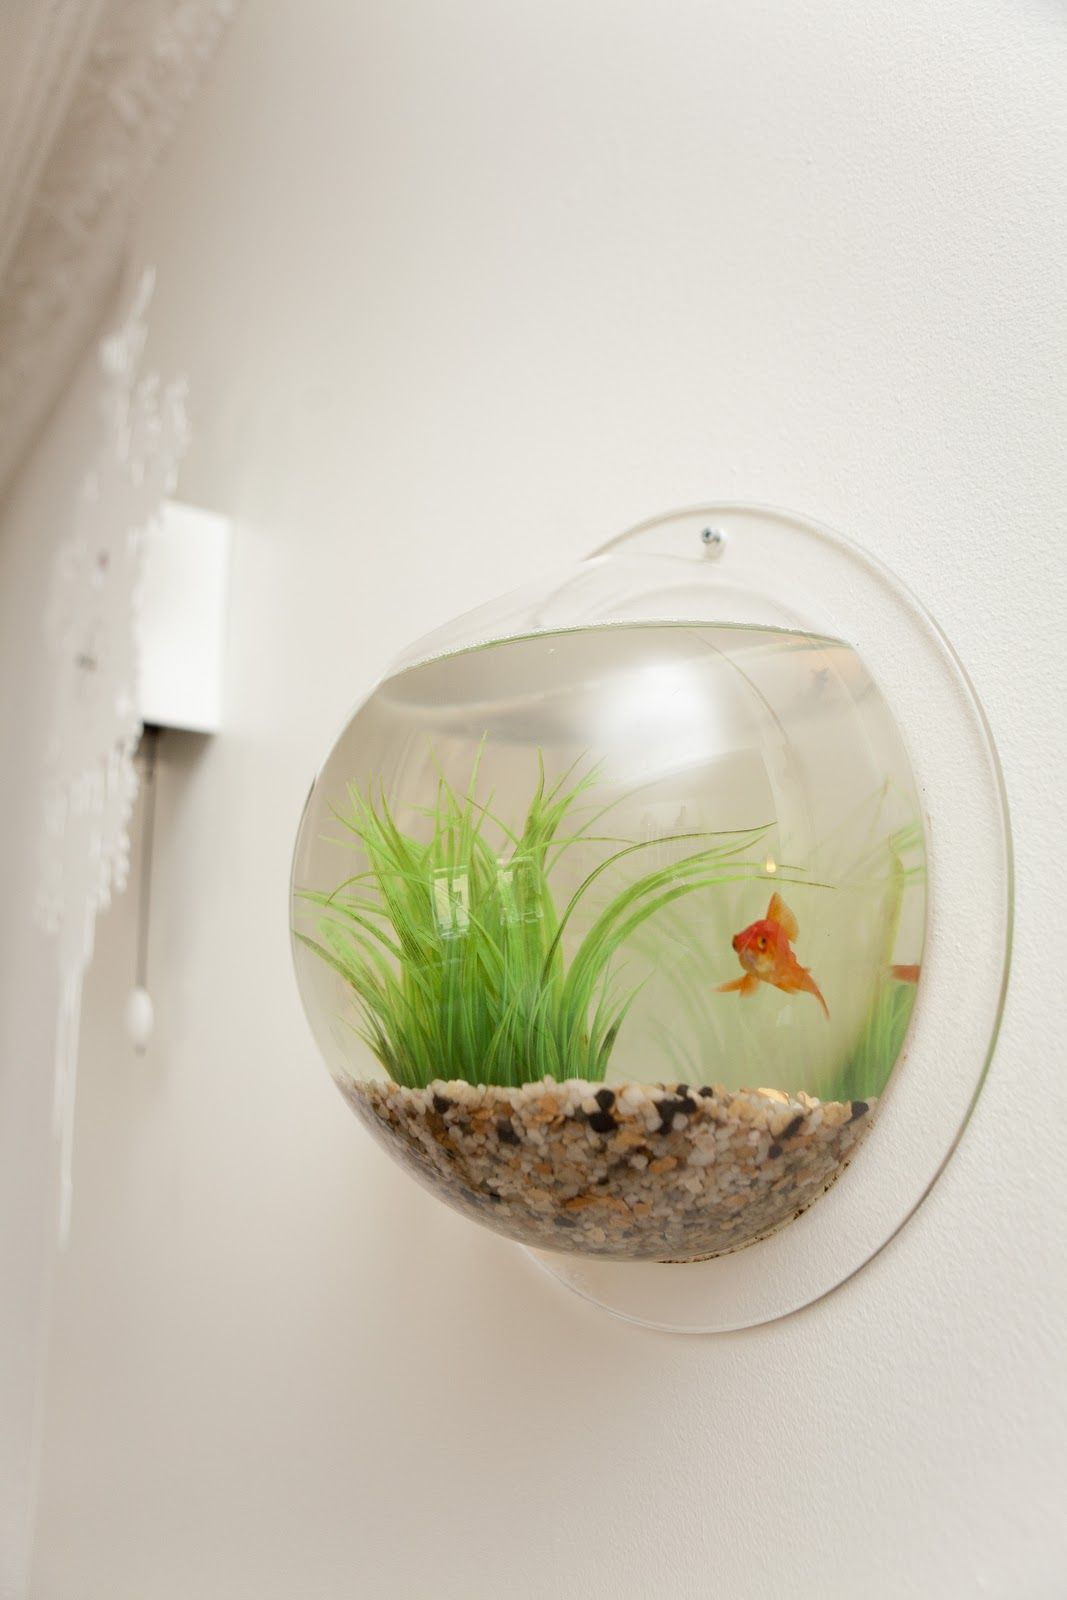 Aquarium in the wall = Coolest pet ever! | Home Decor. | Pinterest ...